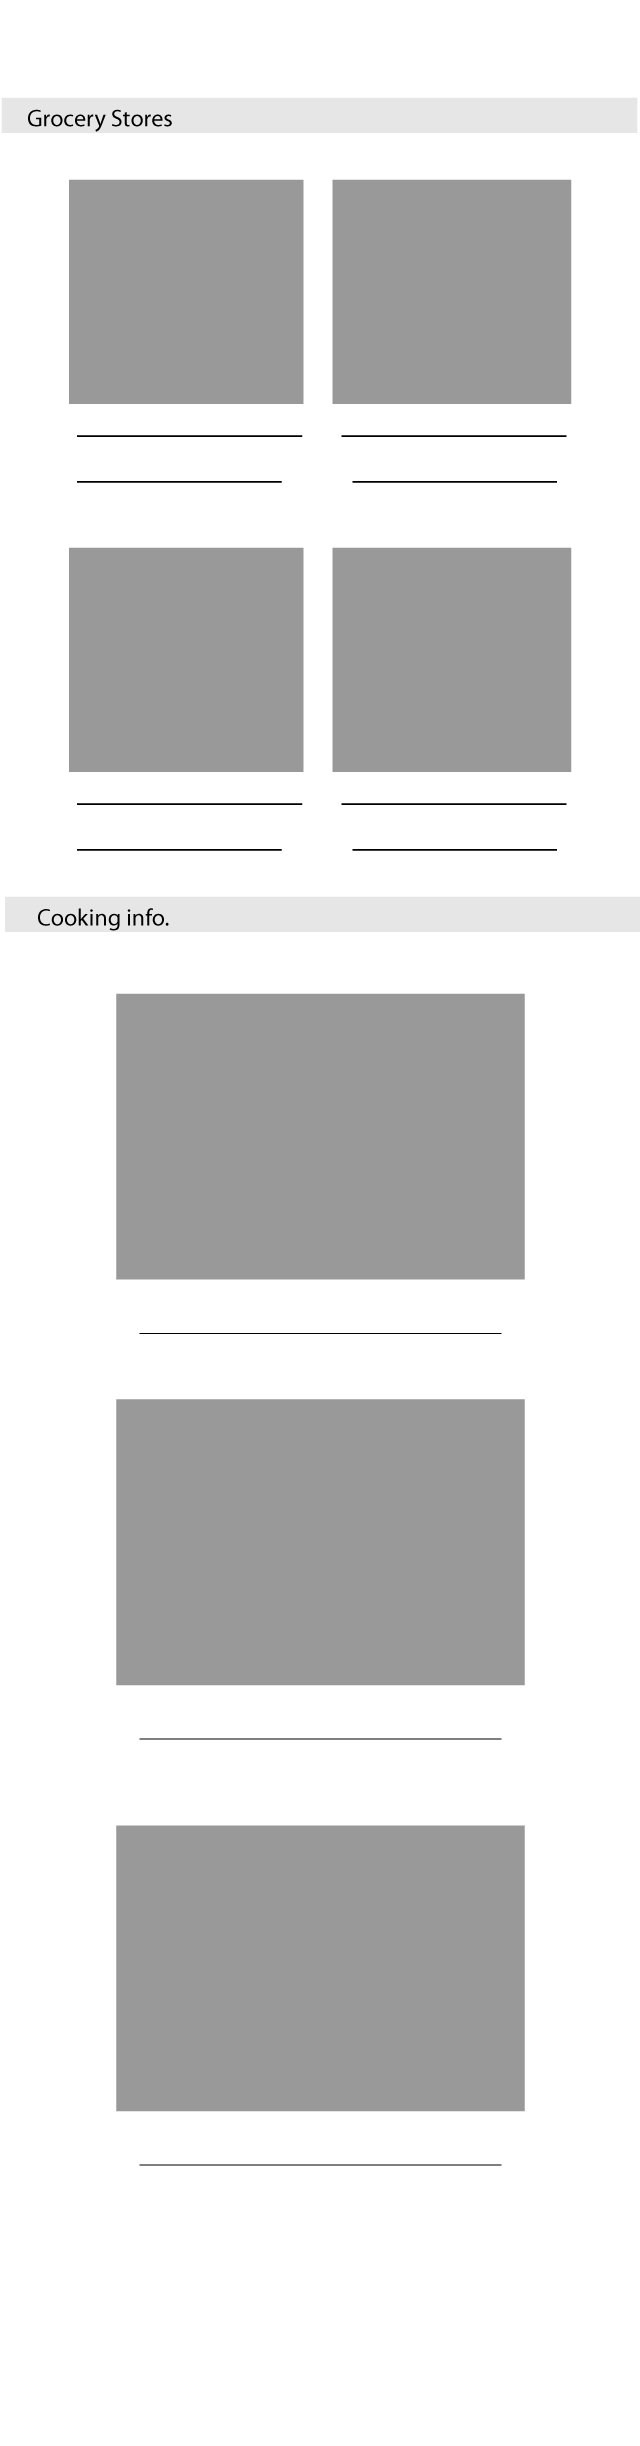 mobile-wireframing-04-02.png